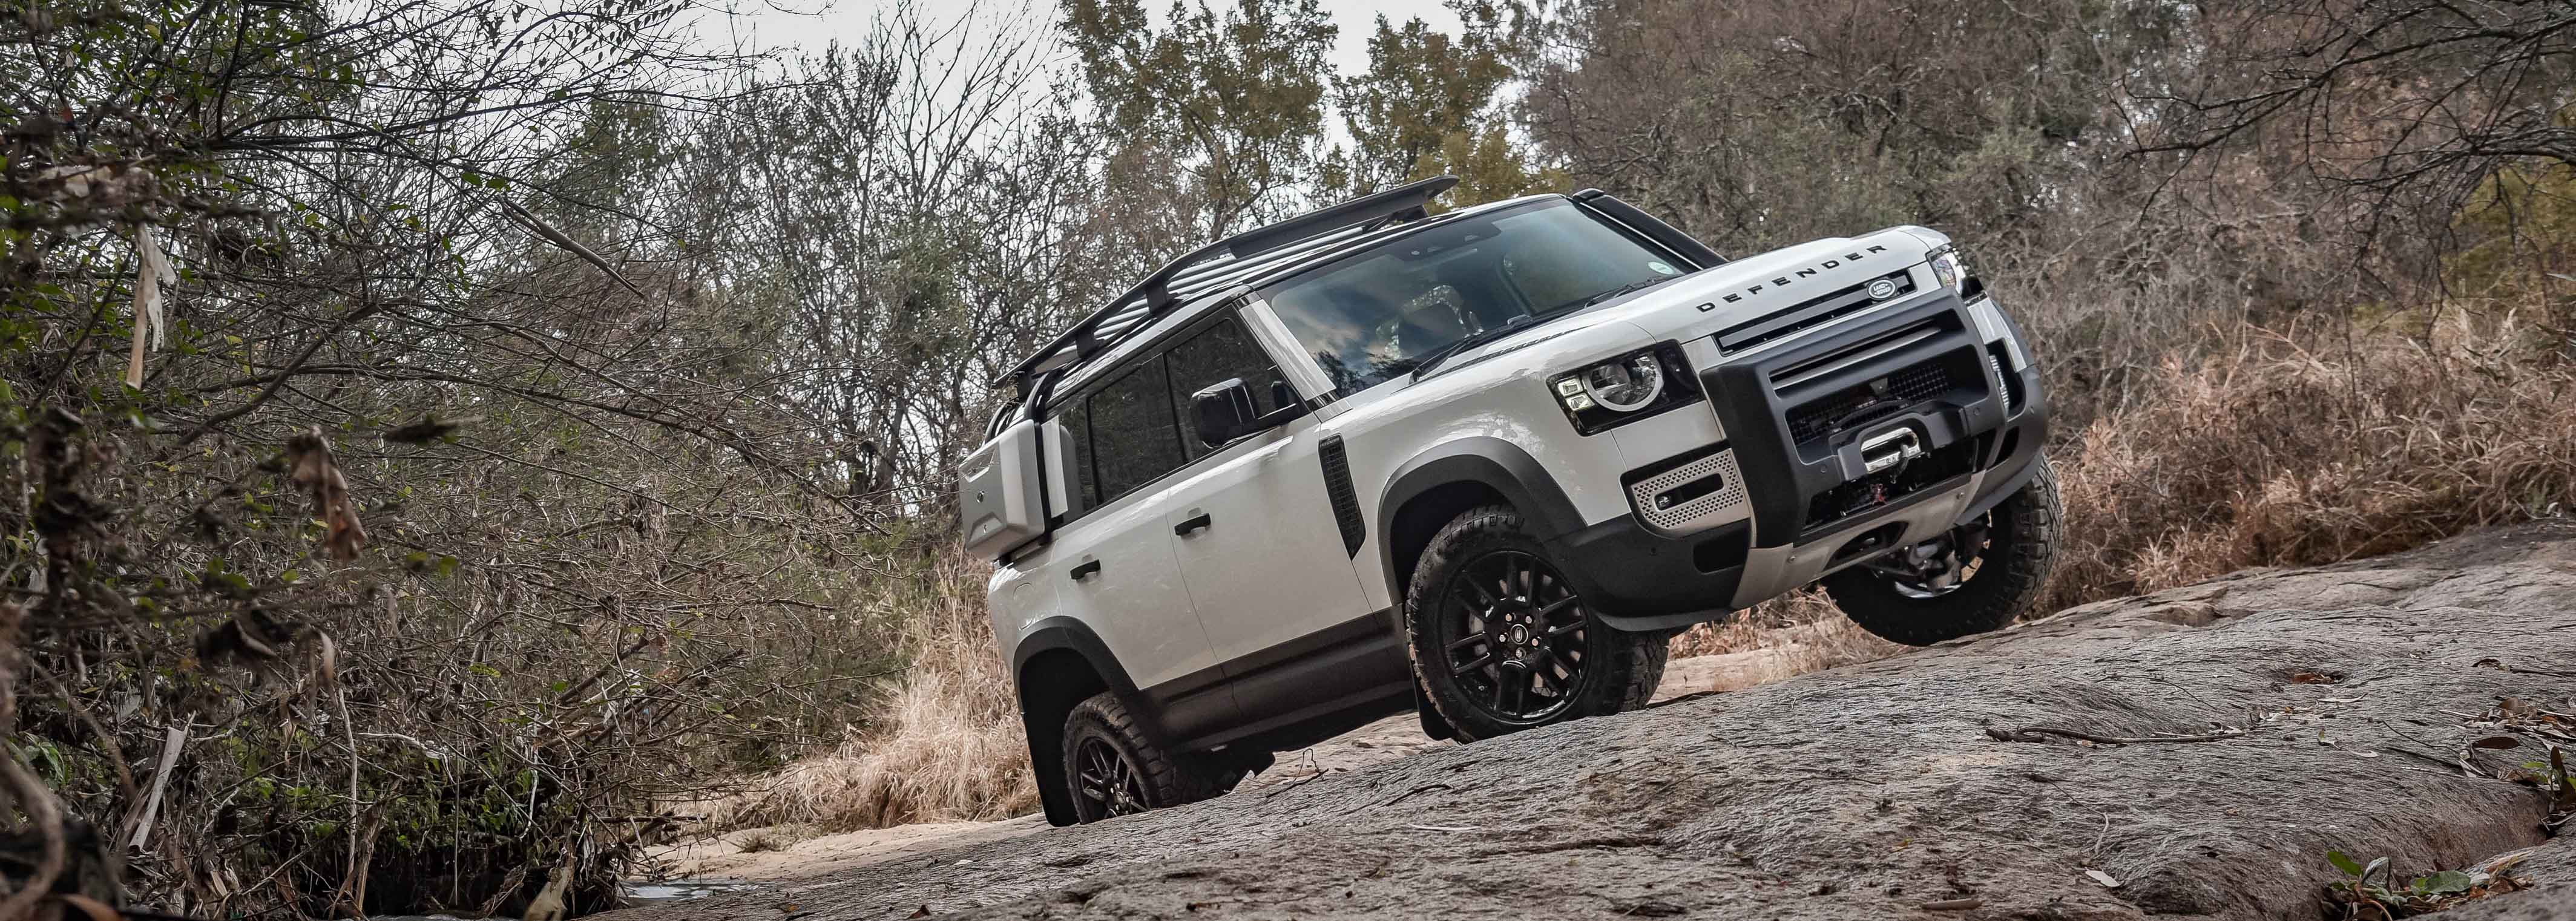 Experiencing the Land Rover Defender